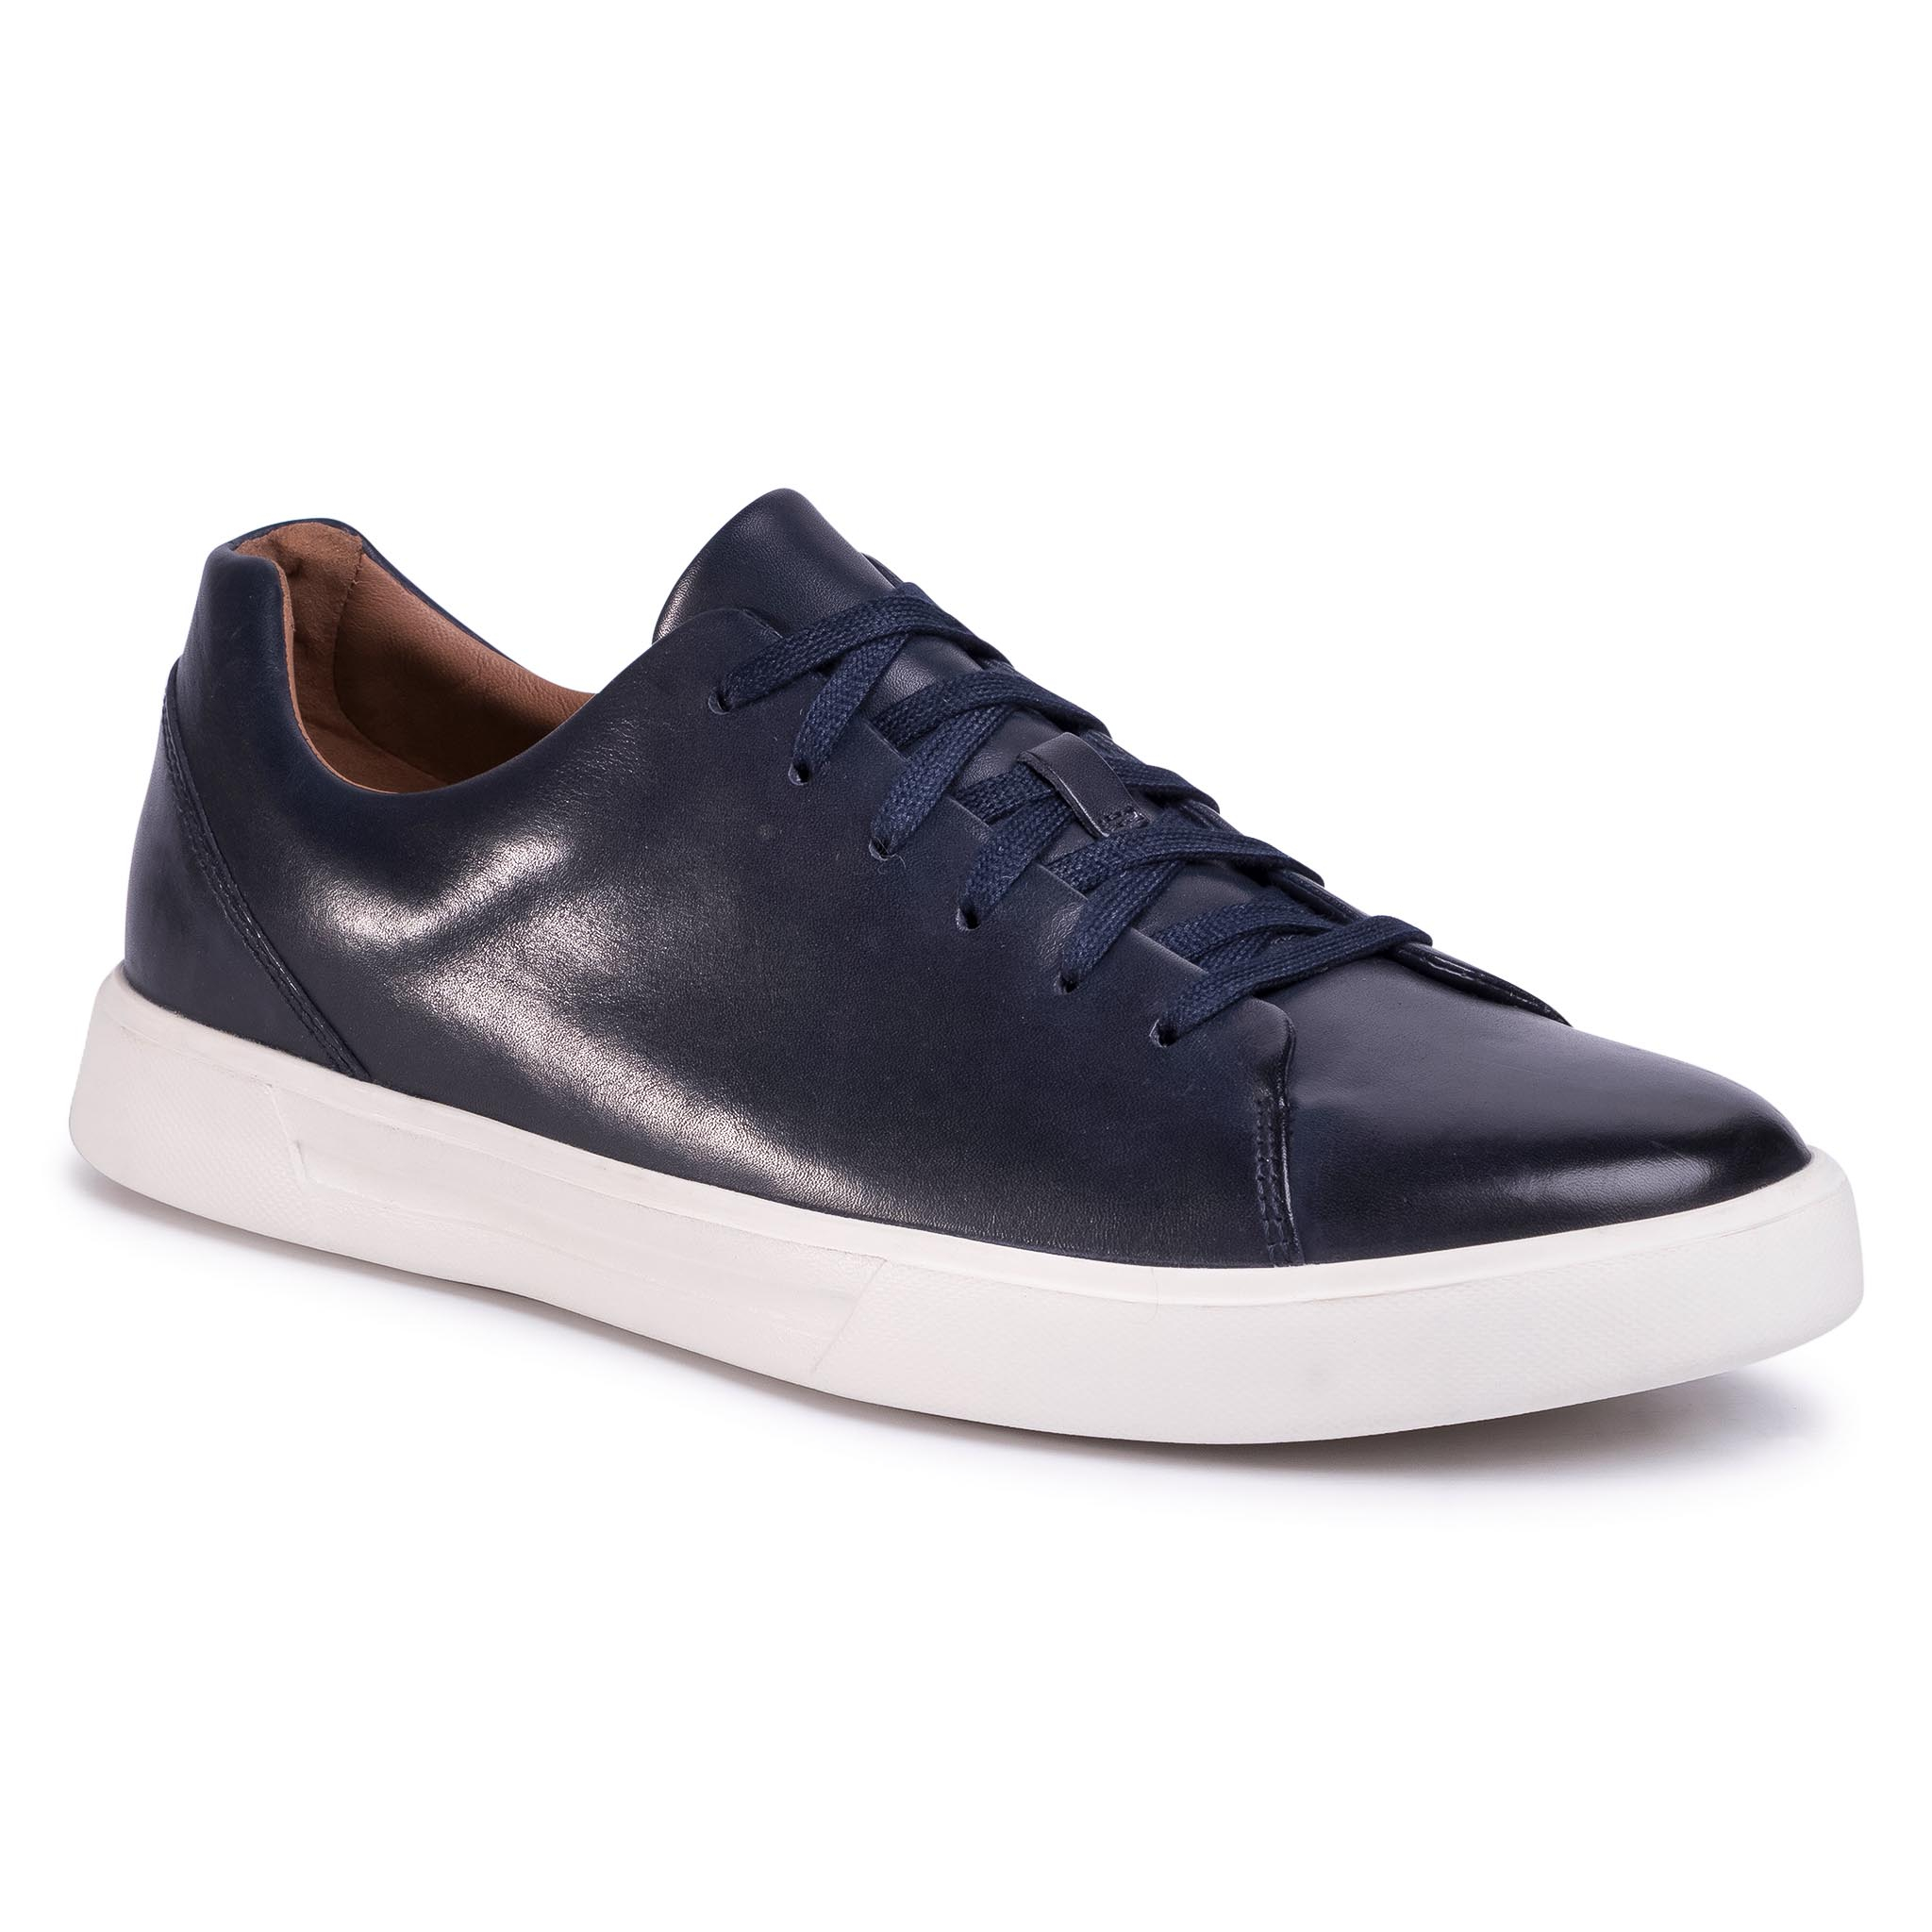 Sneakers Clarks - Un Costa Lace 261485577 Navy Leather imagine